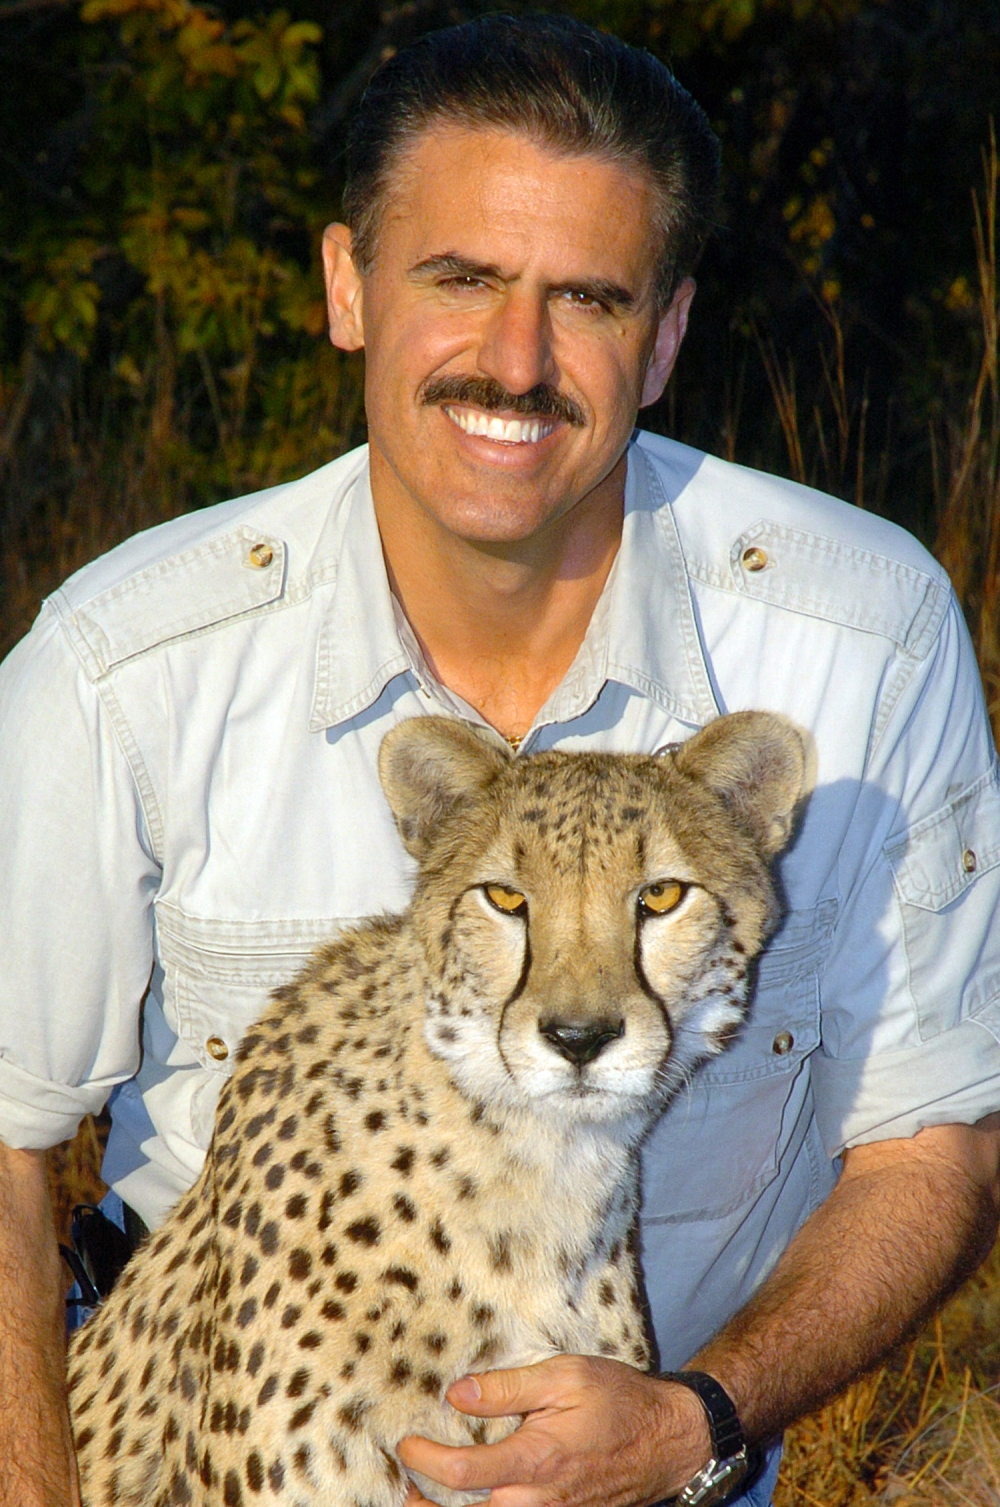 Ron & Cheetah in South Africa